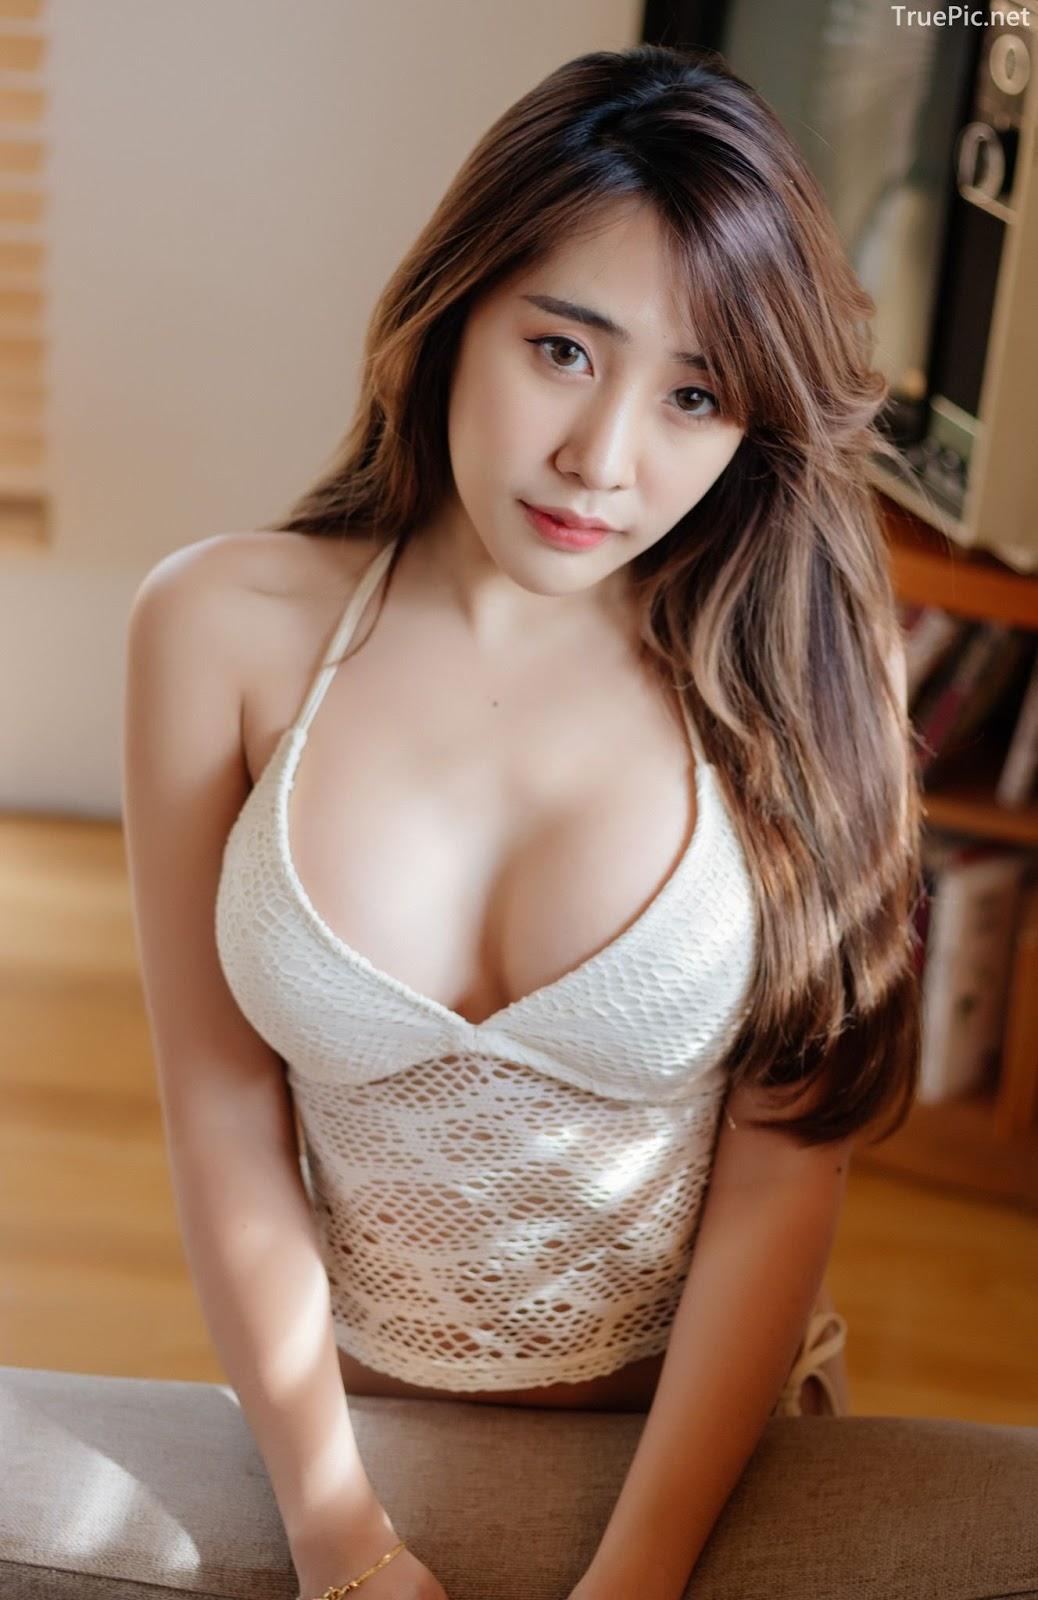 Thailand model Suneta Ngachalvy so sexy with album Bring me a Donut - Picture 3